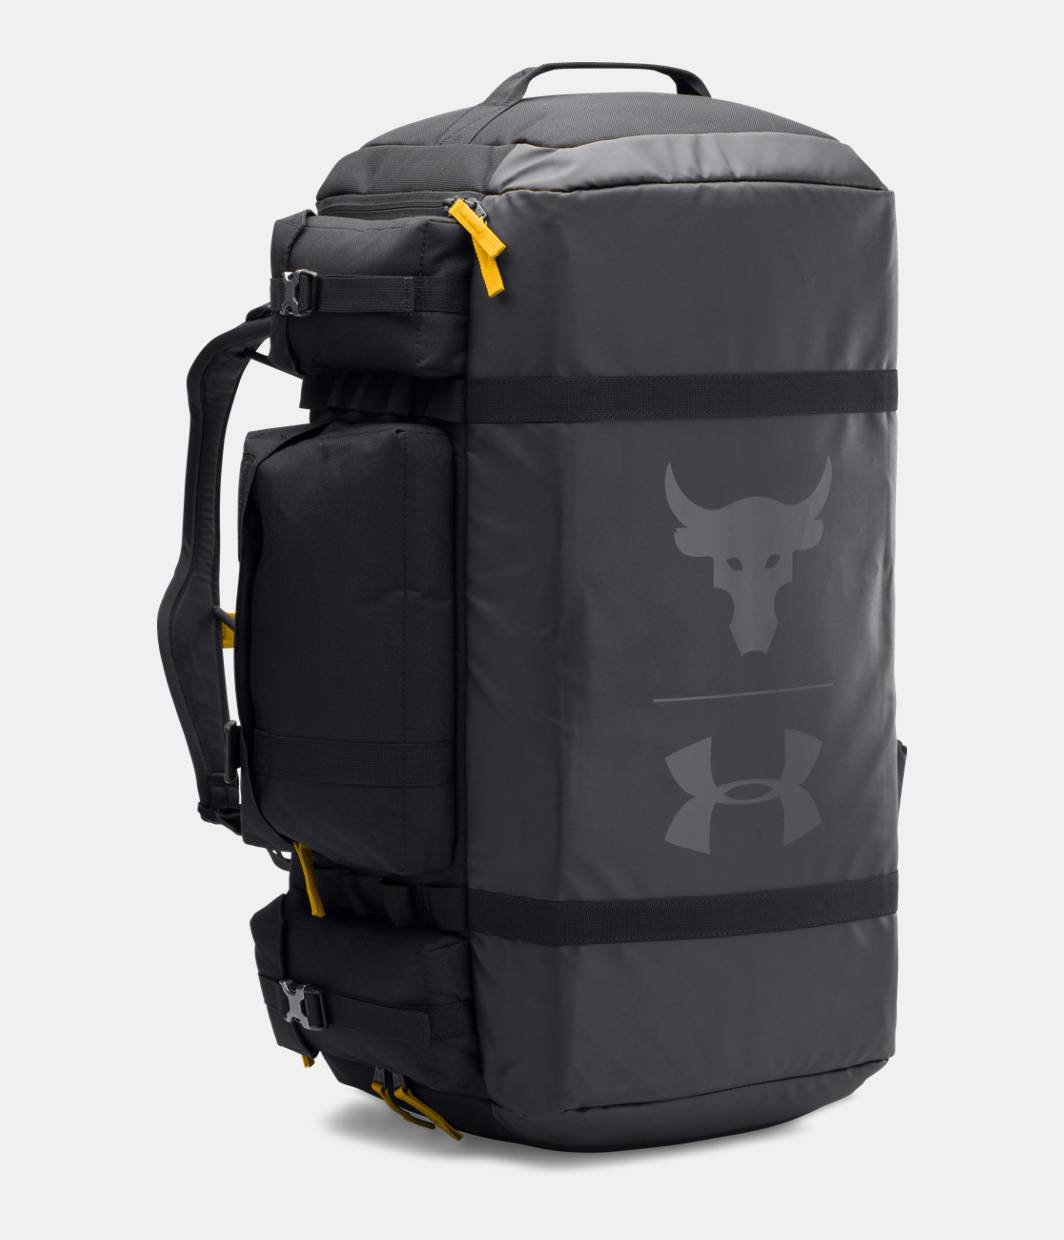 59bc0447576 Under Armor Rock Duffle Bag